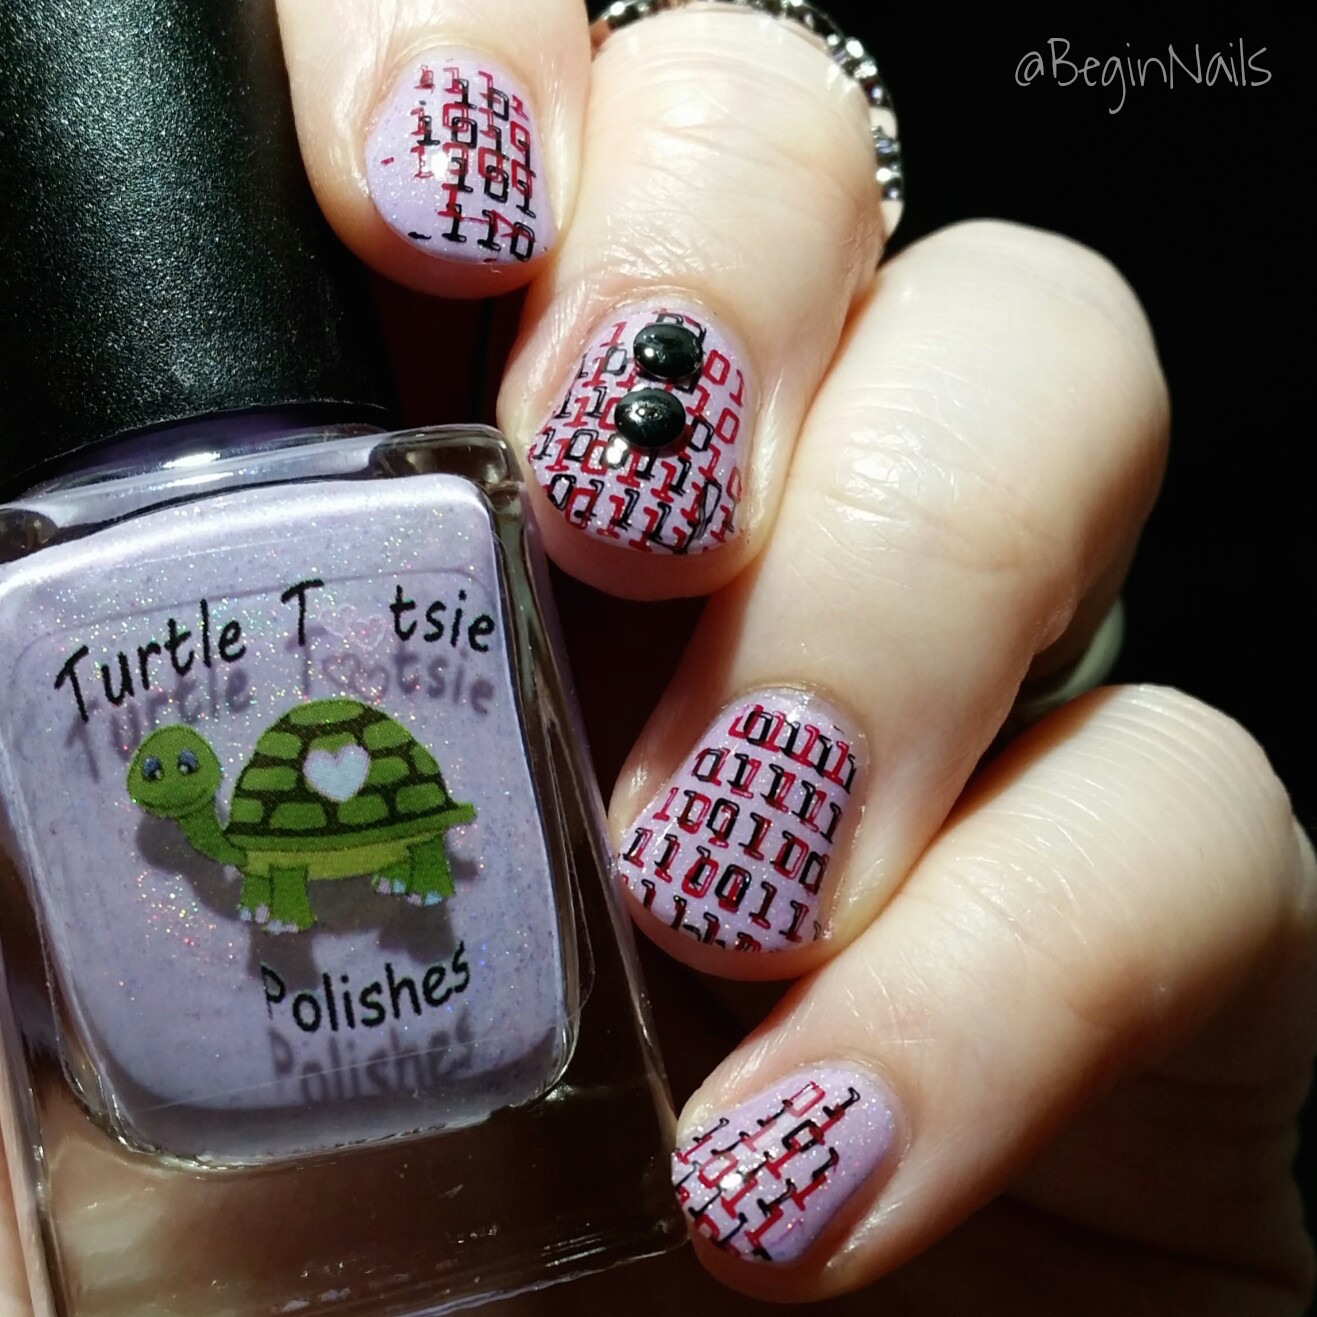 Let\'s Begin Nails: It Girl Nail Art IG110 Plate Manis Part 1